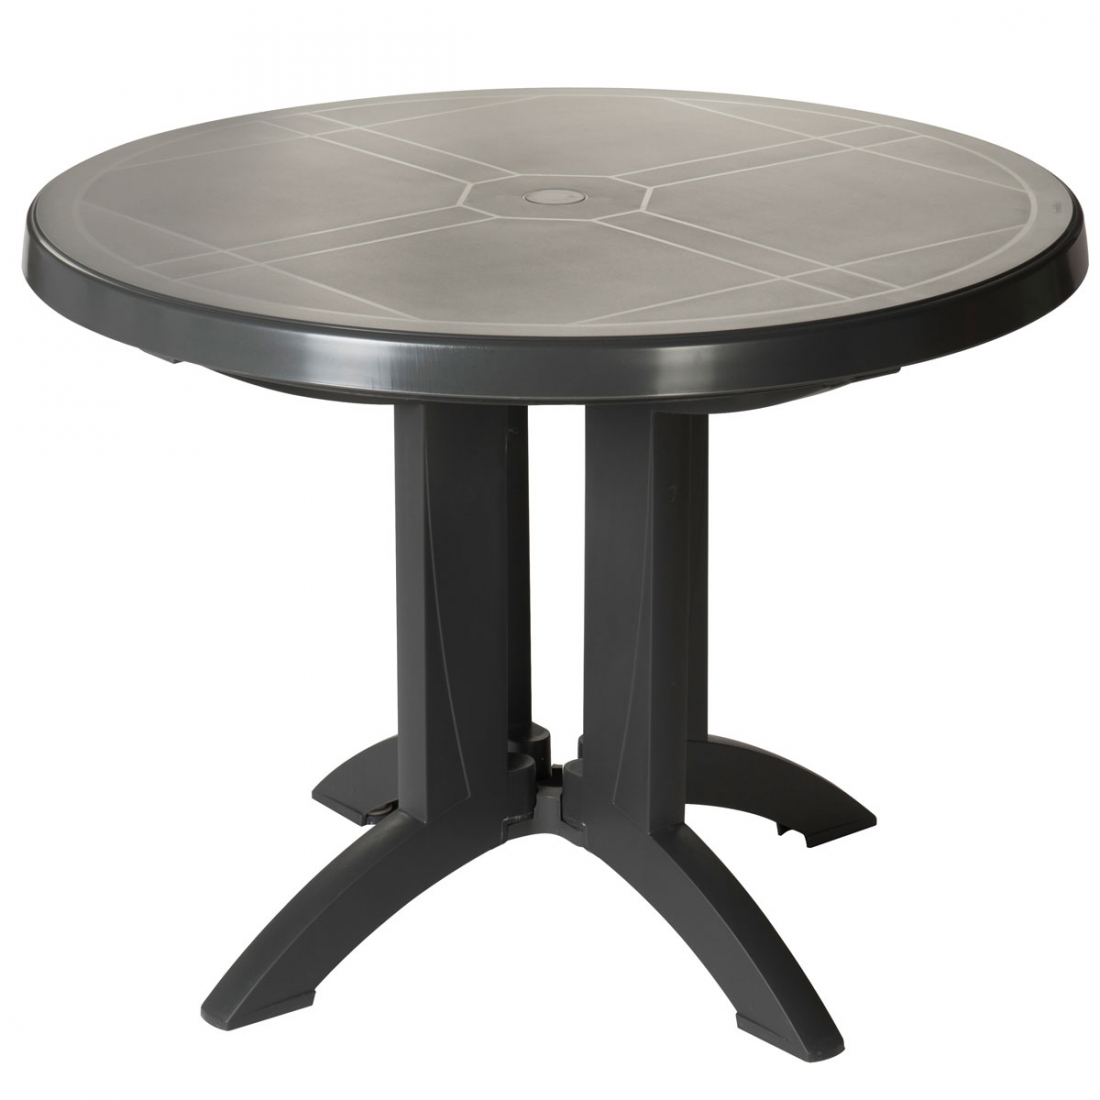 Table Ronde Jardin Plastique Maison Design